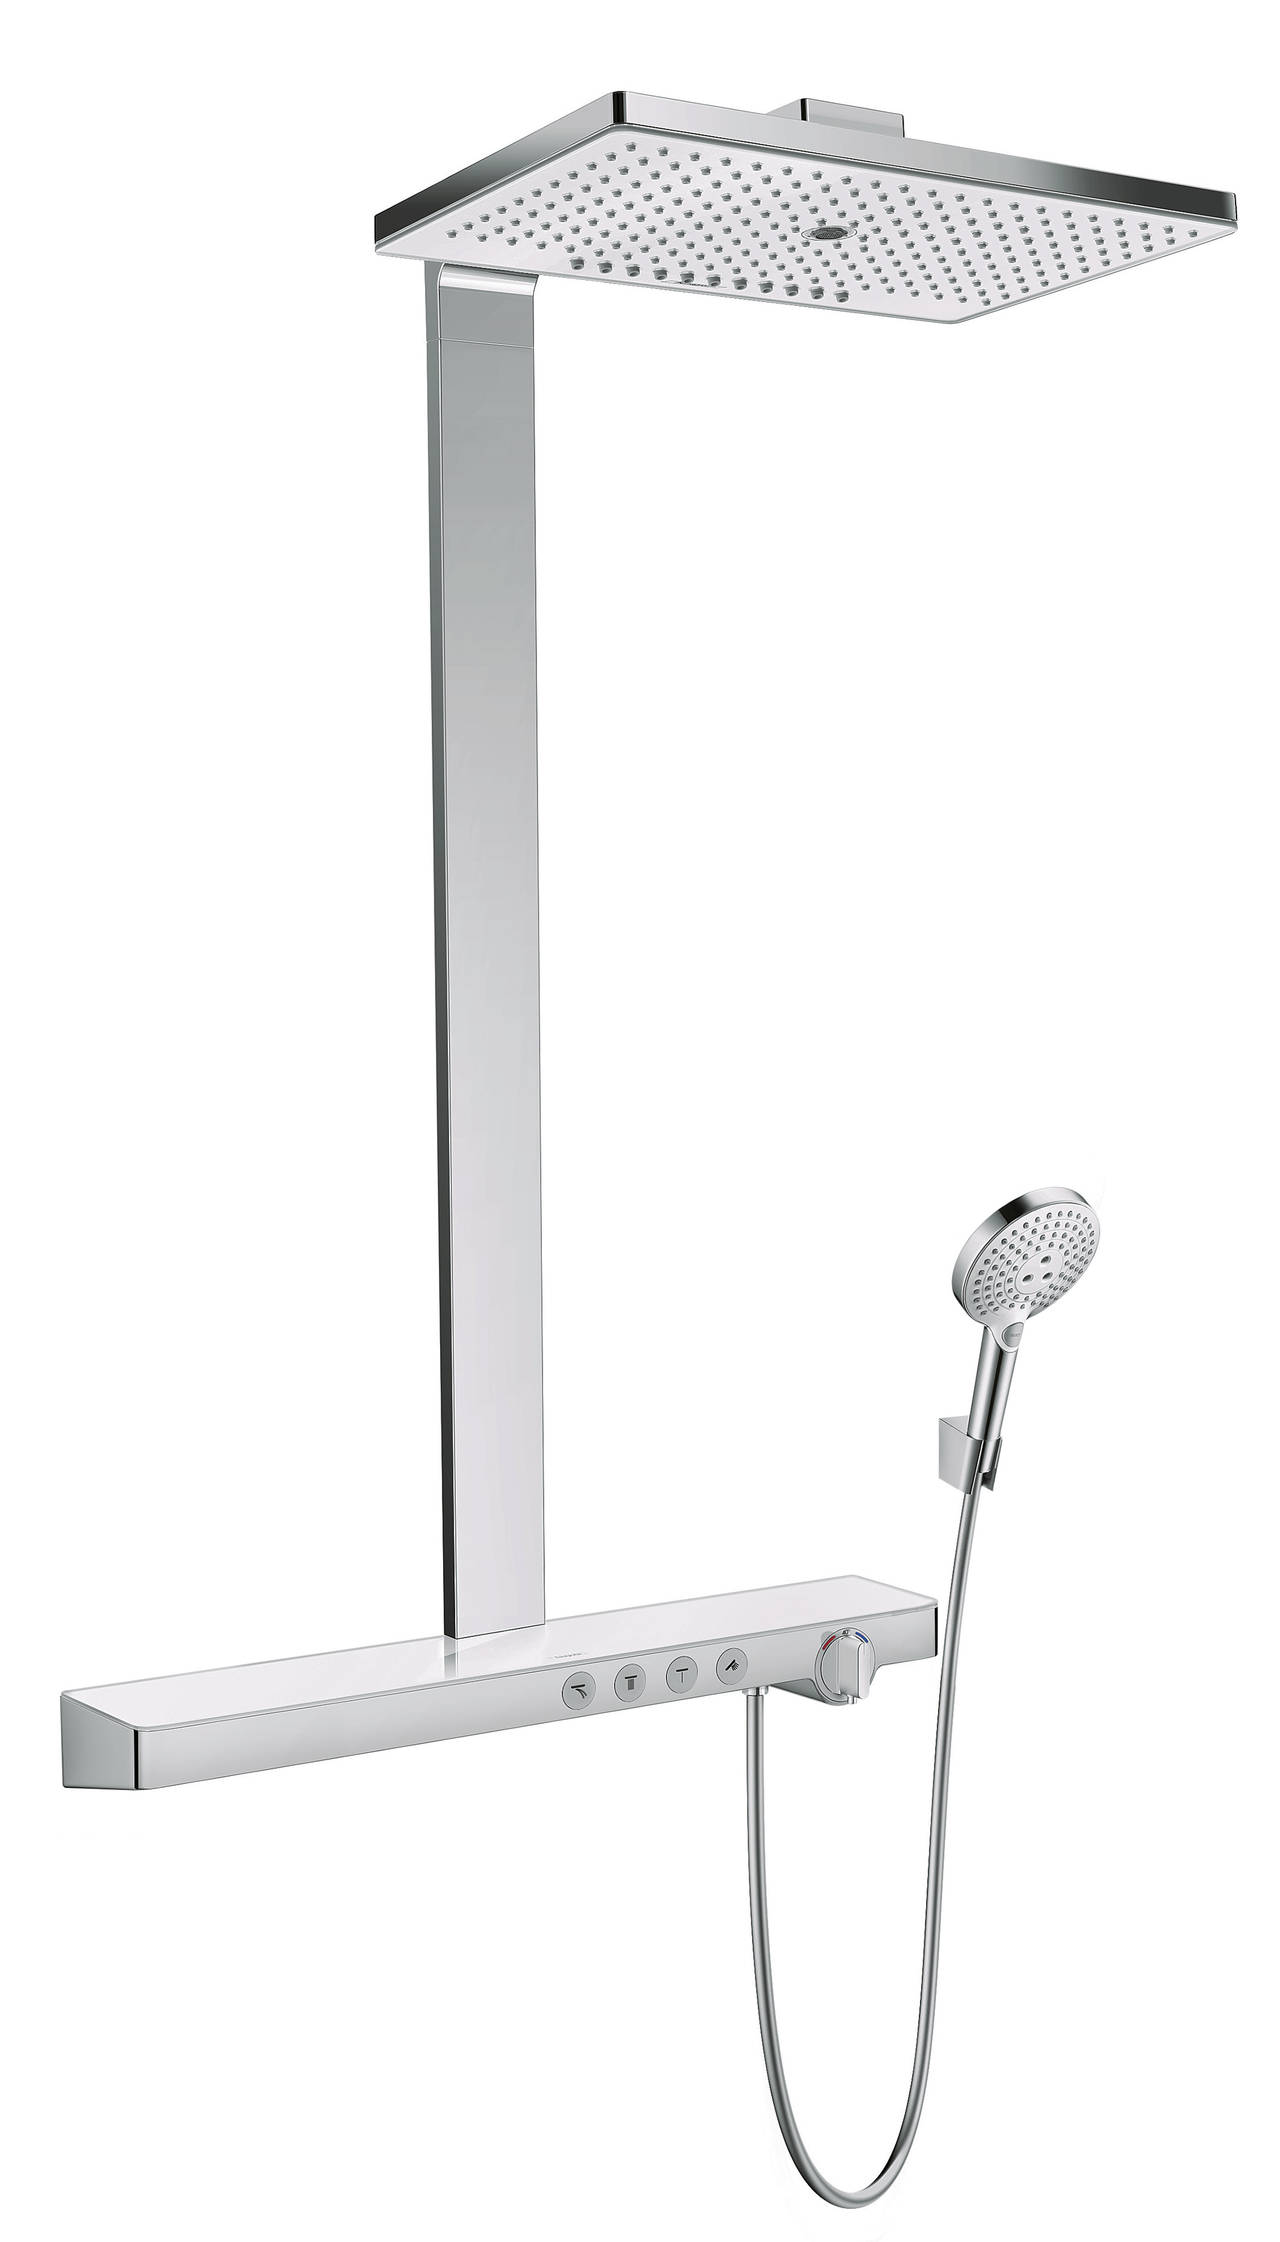 Hansgrohe_RainmakerSelect_Showerpipe_3jet_S120